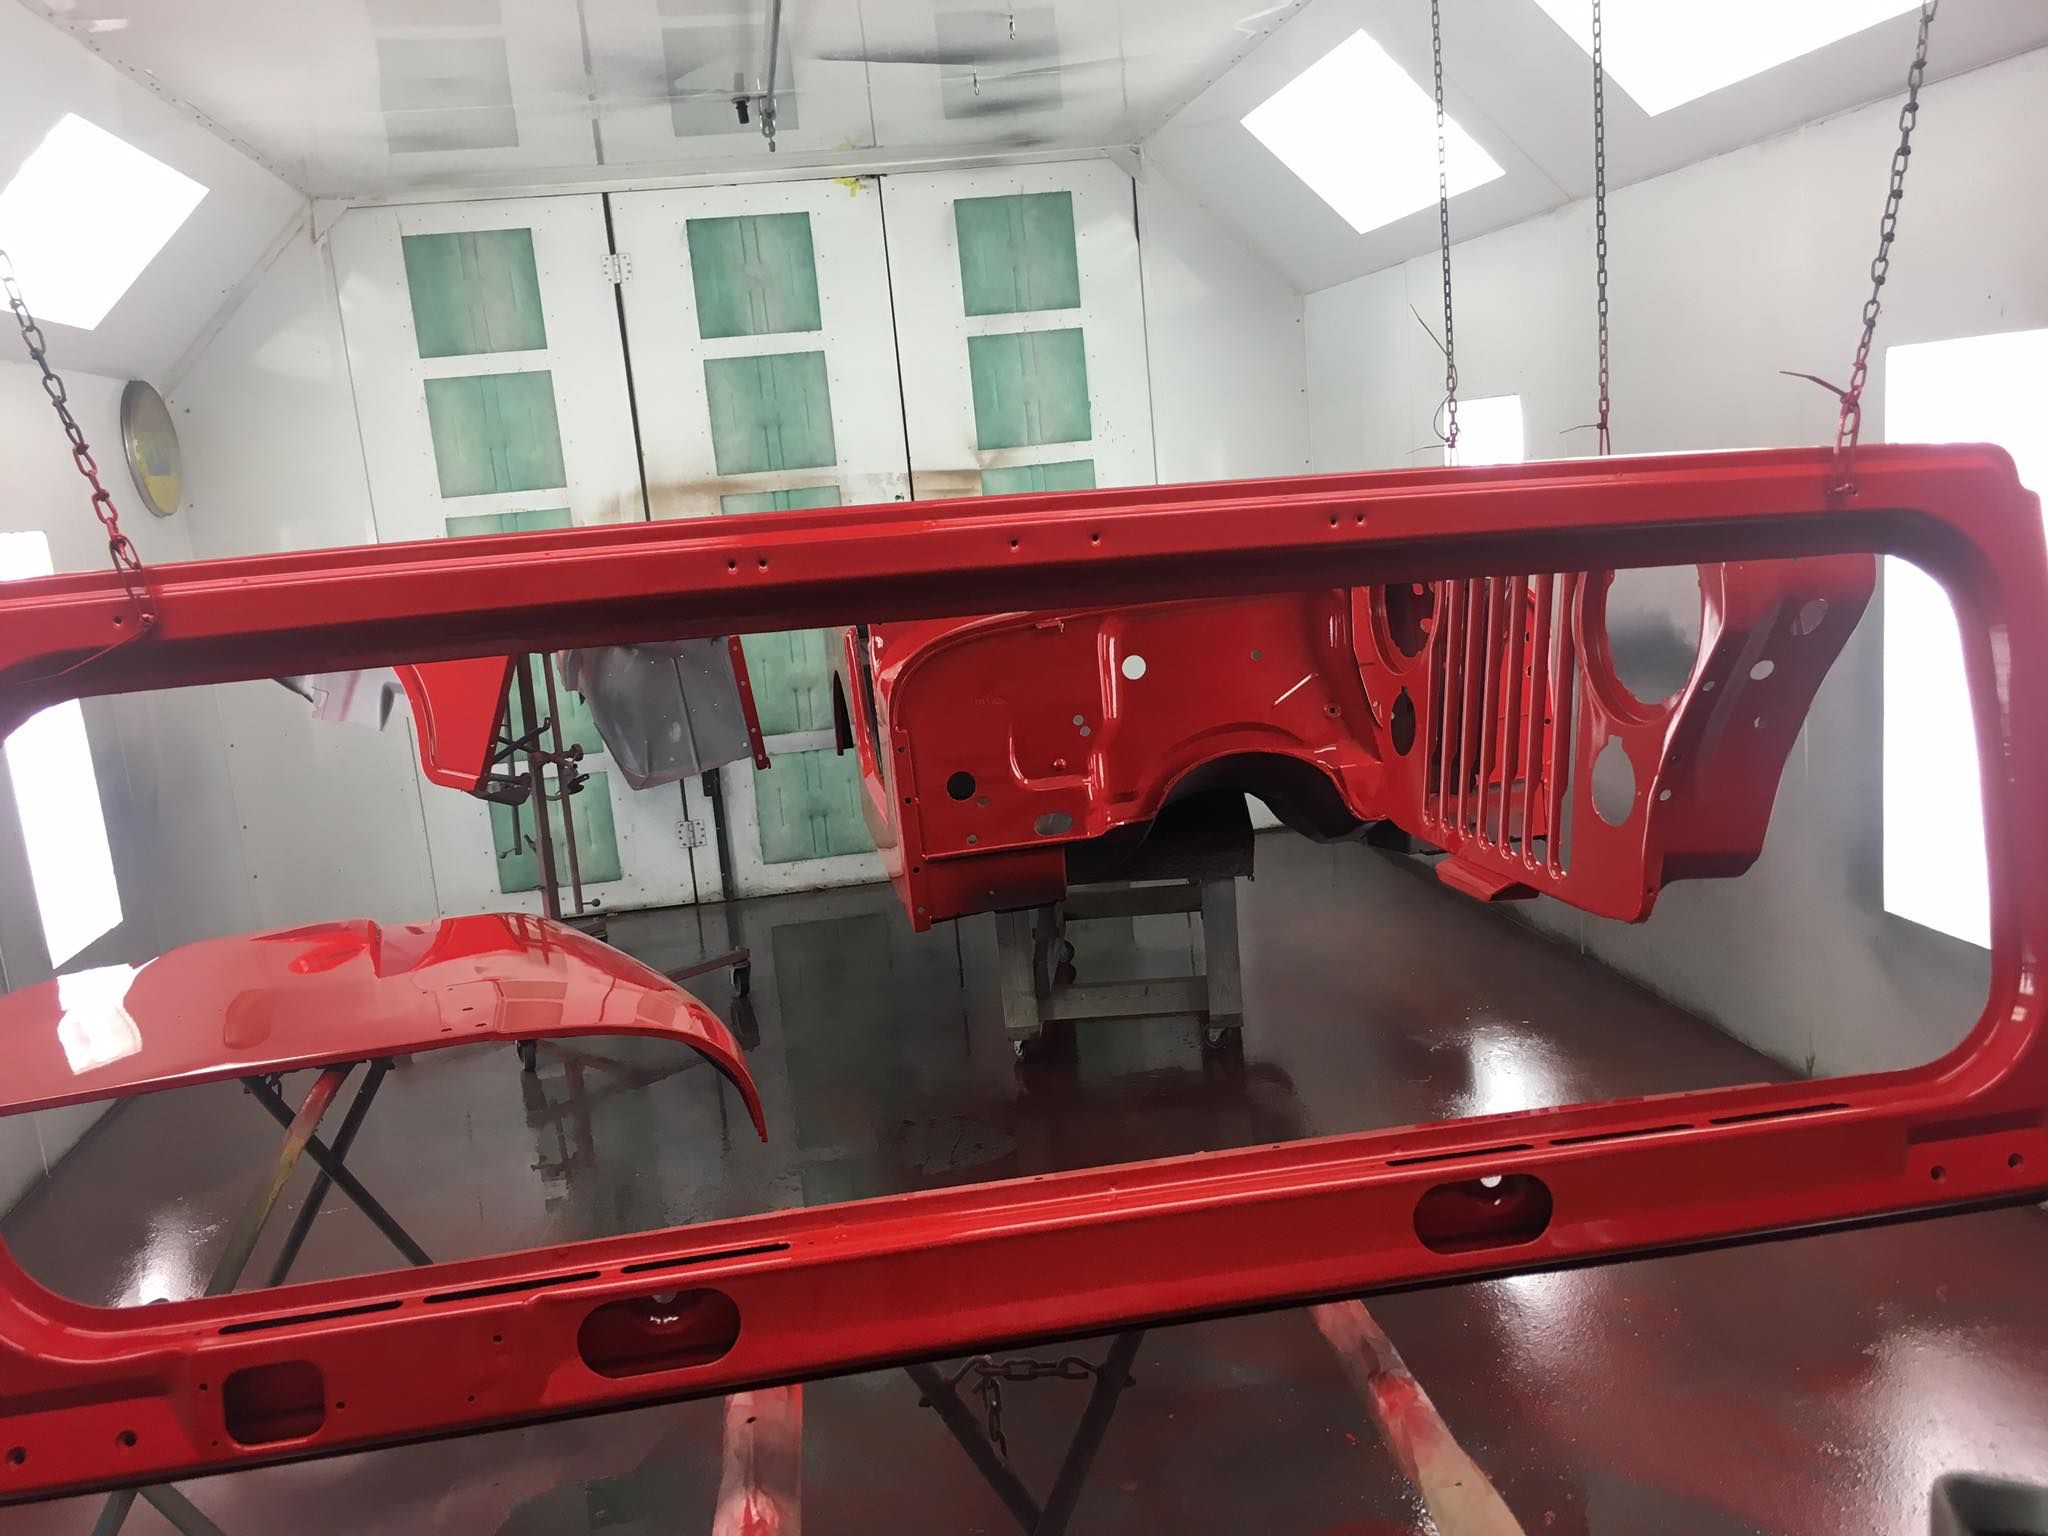 fire engine red (With images) Fire engine, Home decor